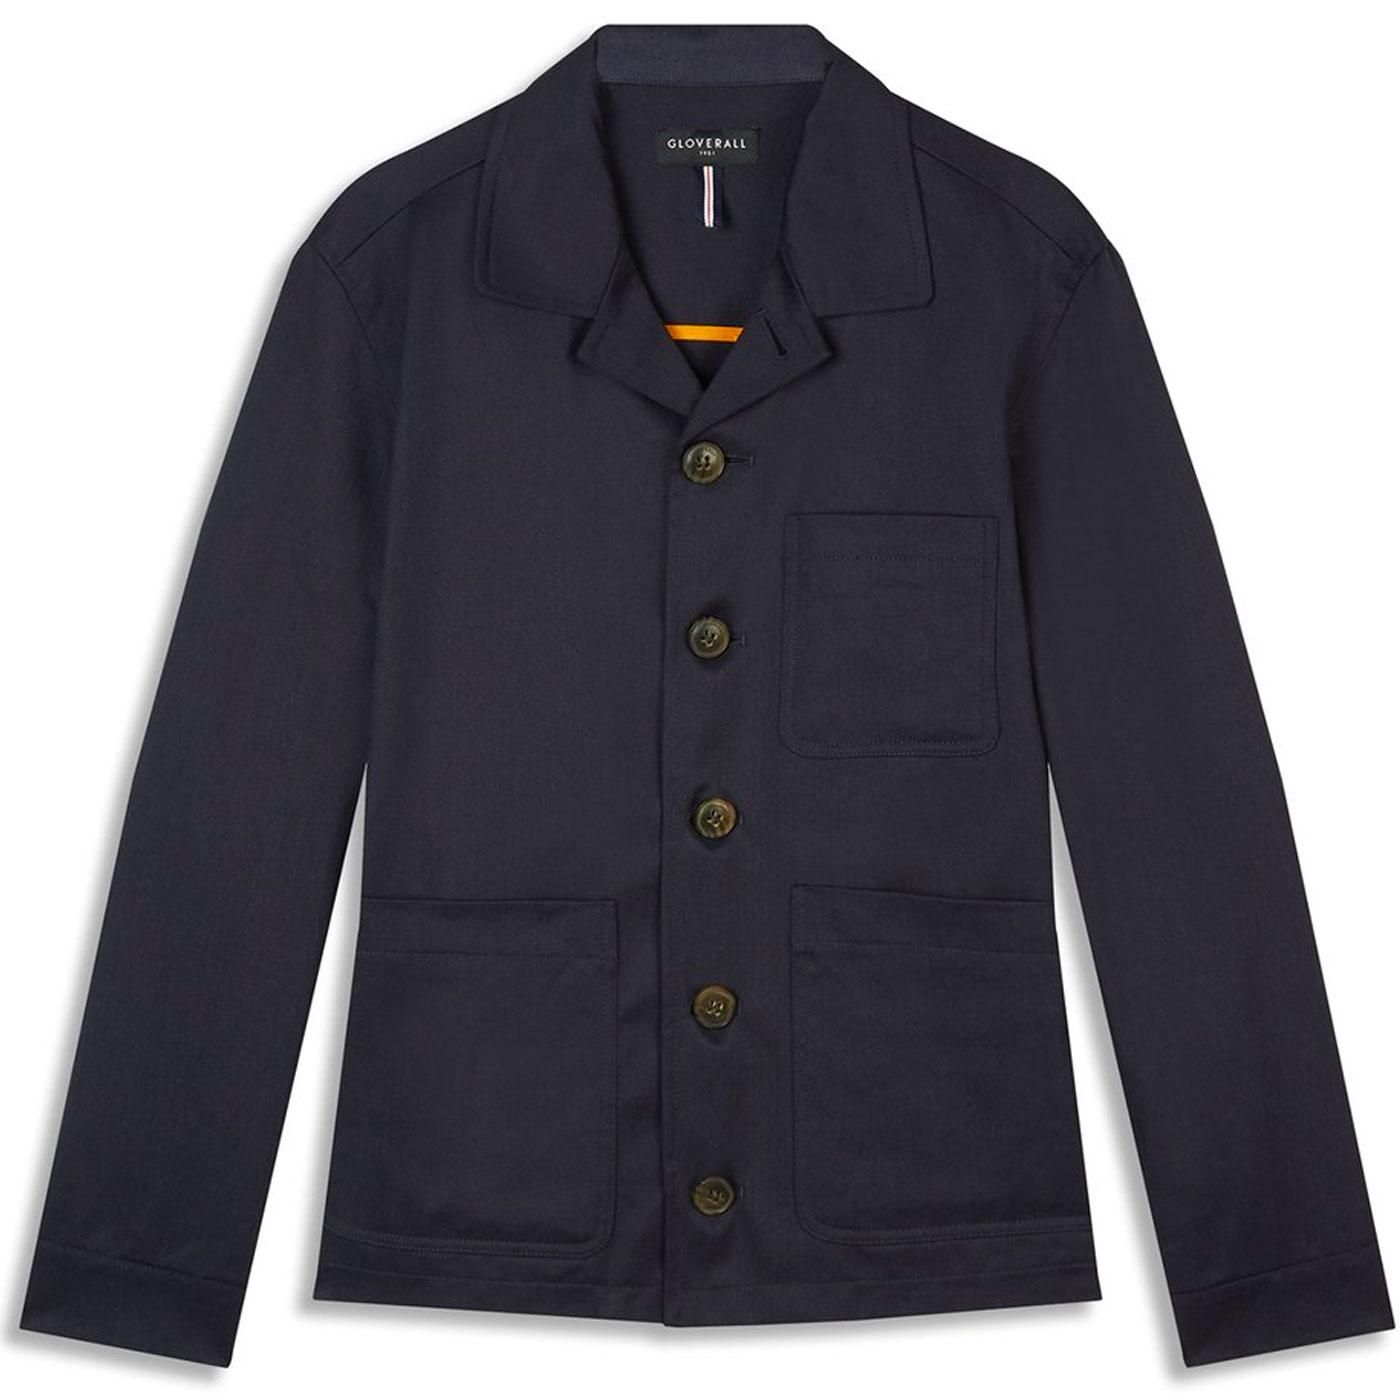 Harry GLOVERALL Mod Made in England Work Jacket N